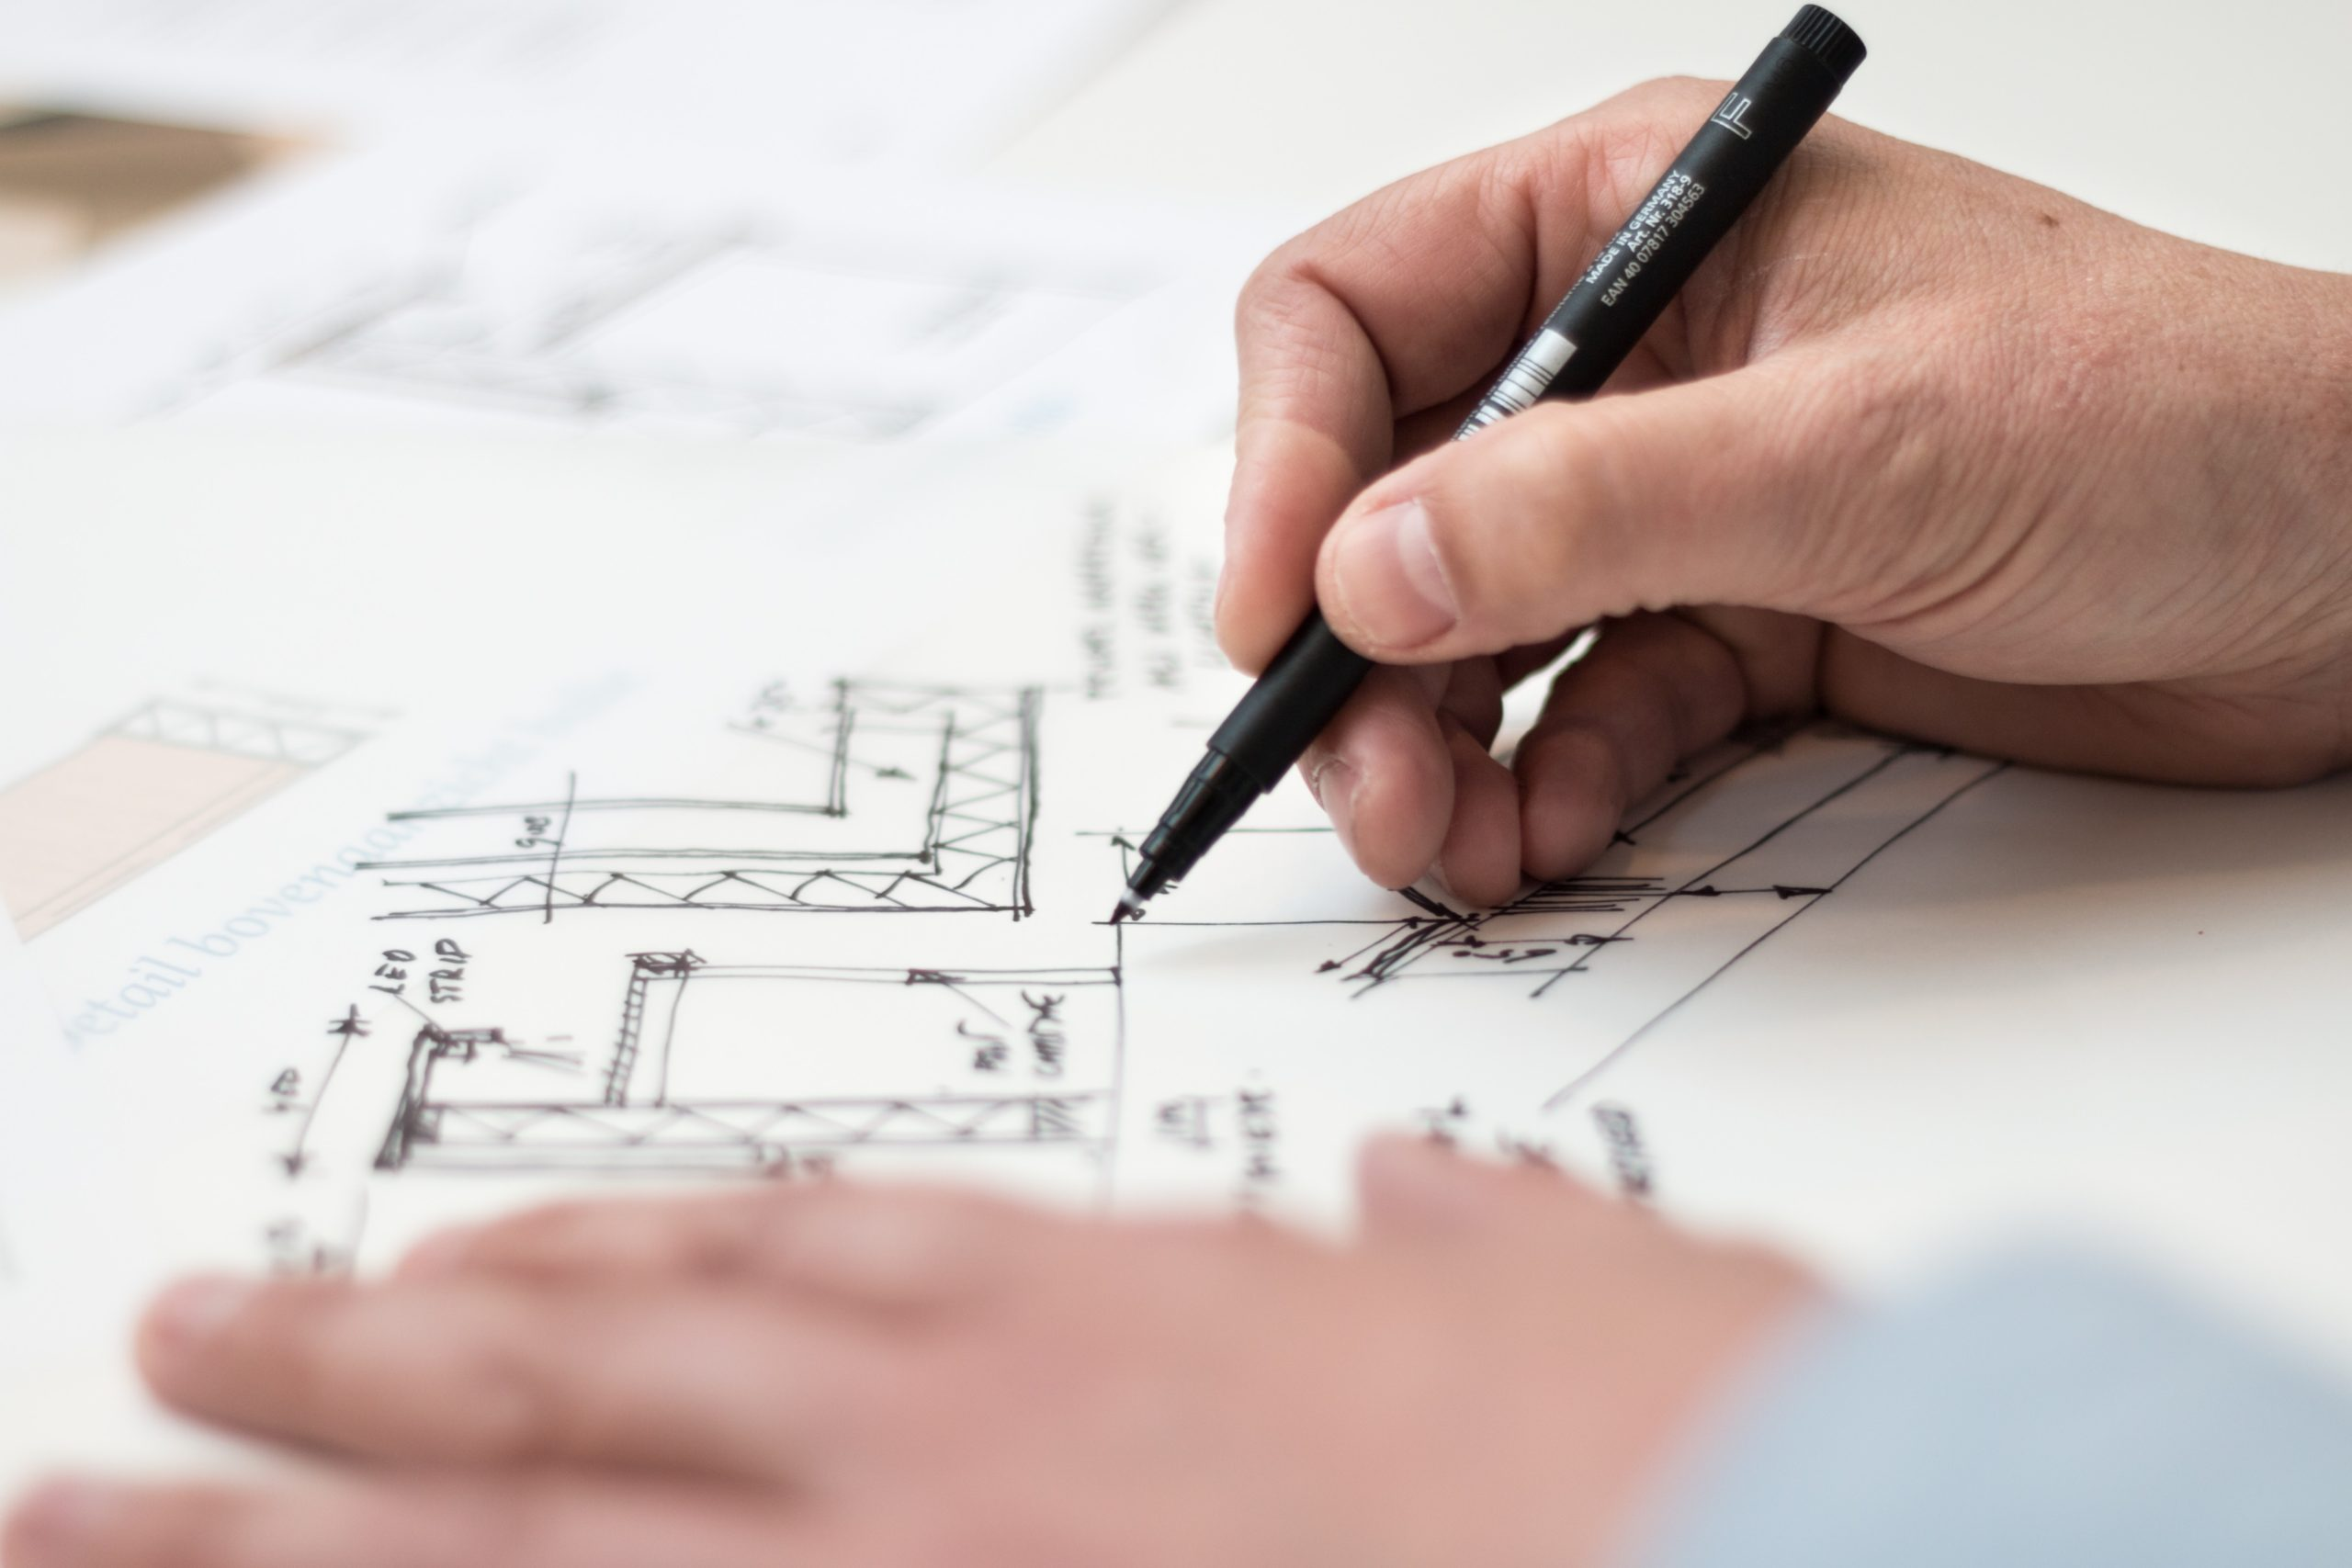 An image of someone working on floor plans